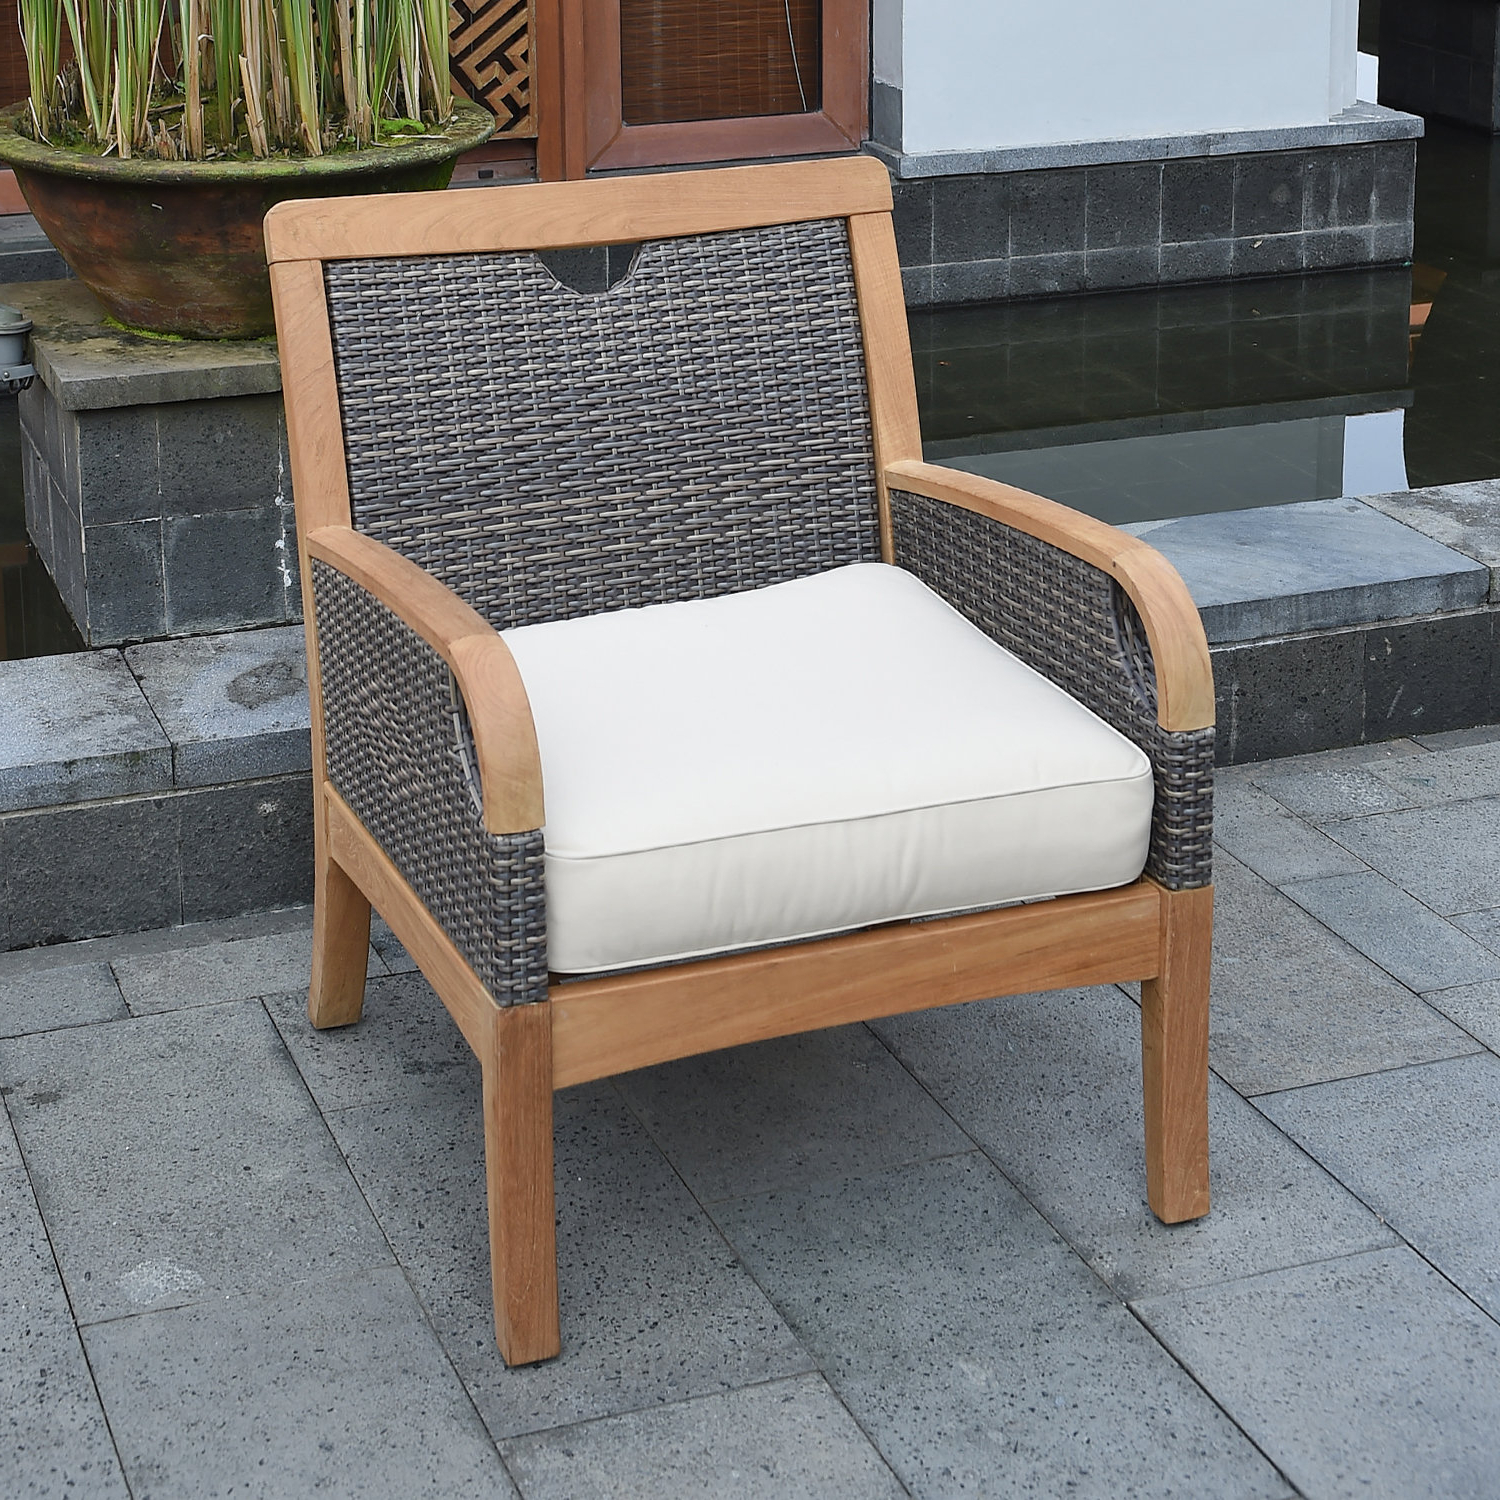 Mansfield Teak Patio Chair With Cushions Throughout Most Up To Date Mansfield Teak Loveseats With Cushion (View 15 of 20)